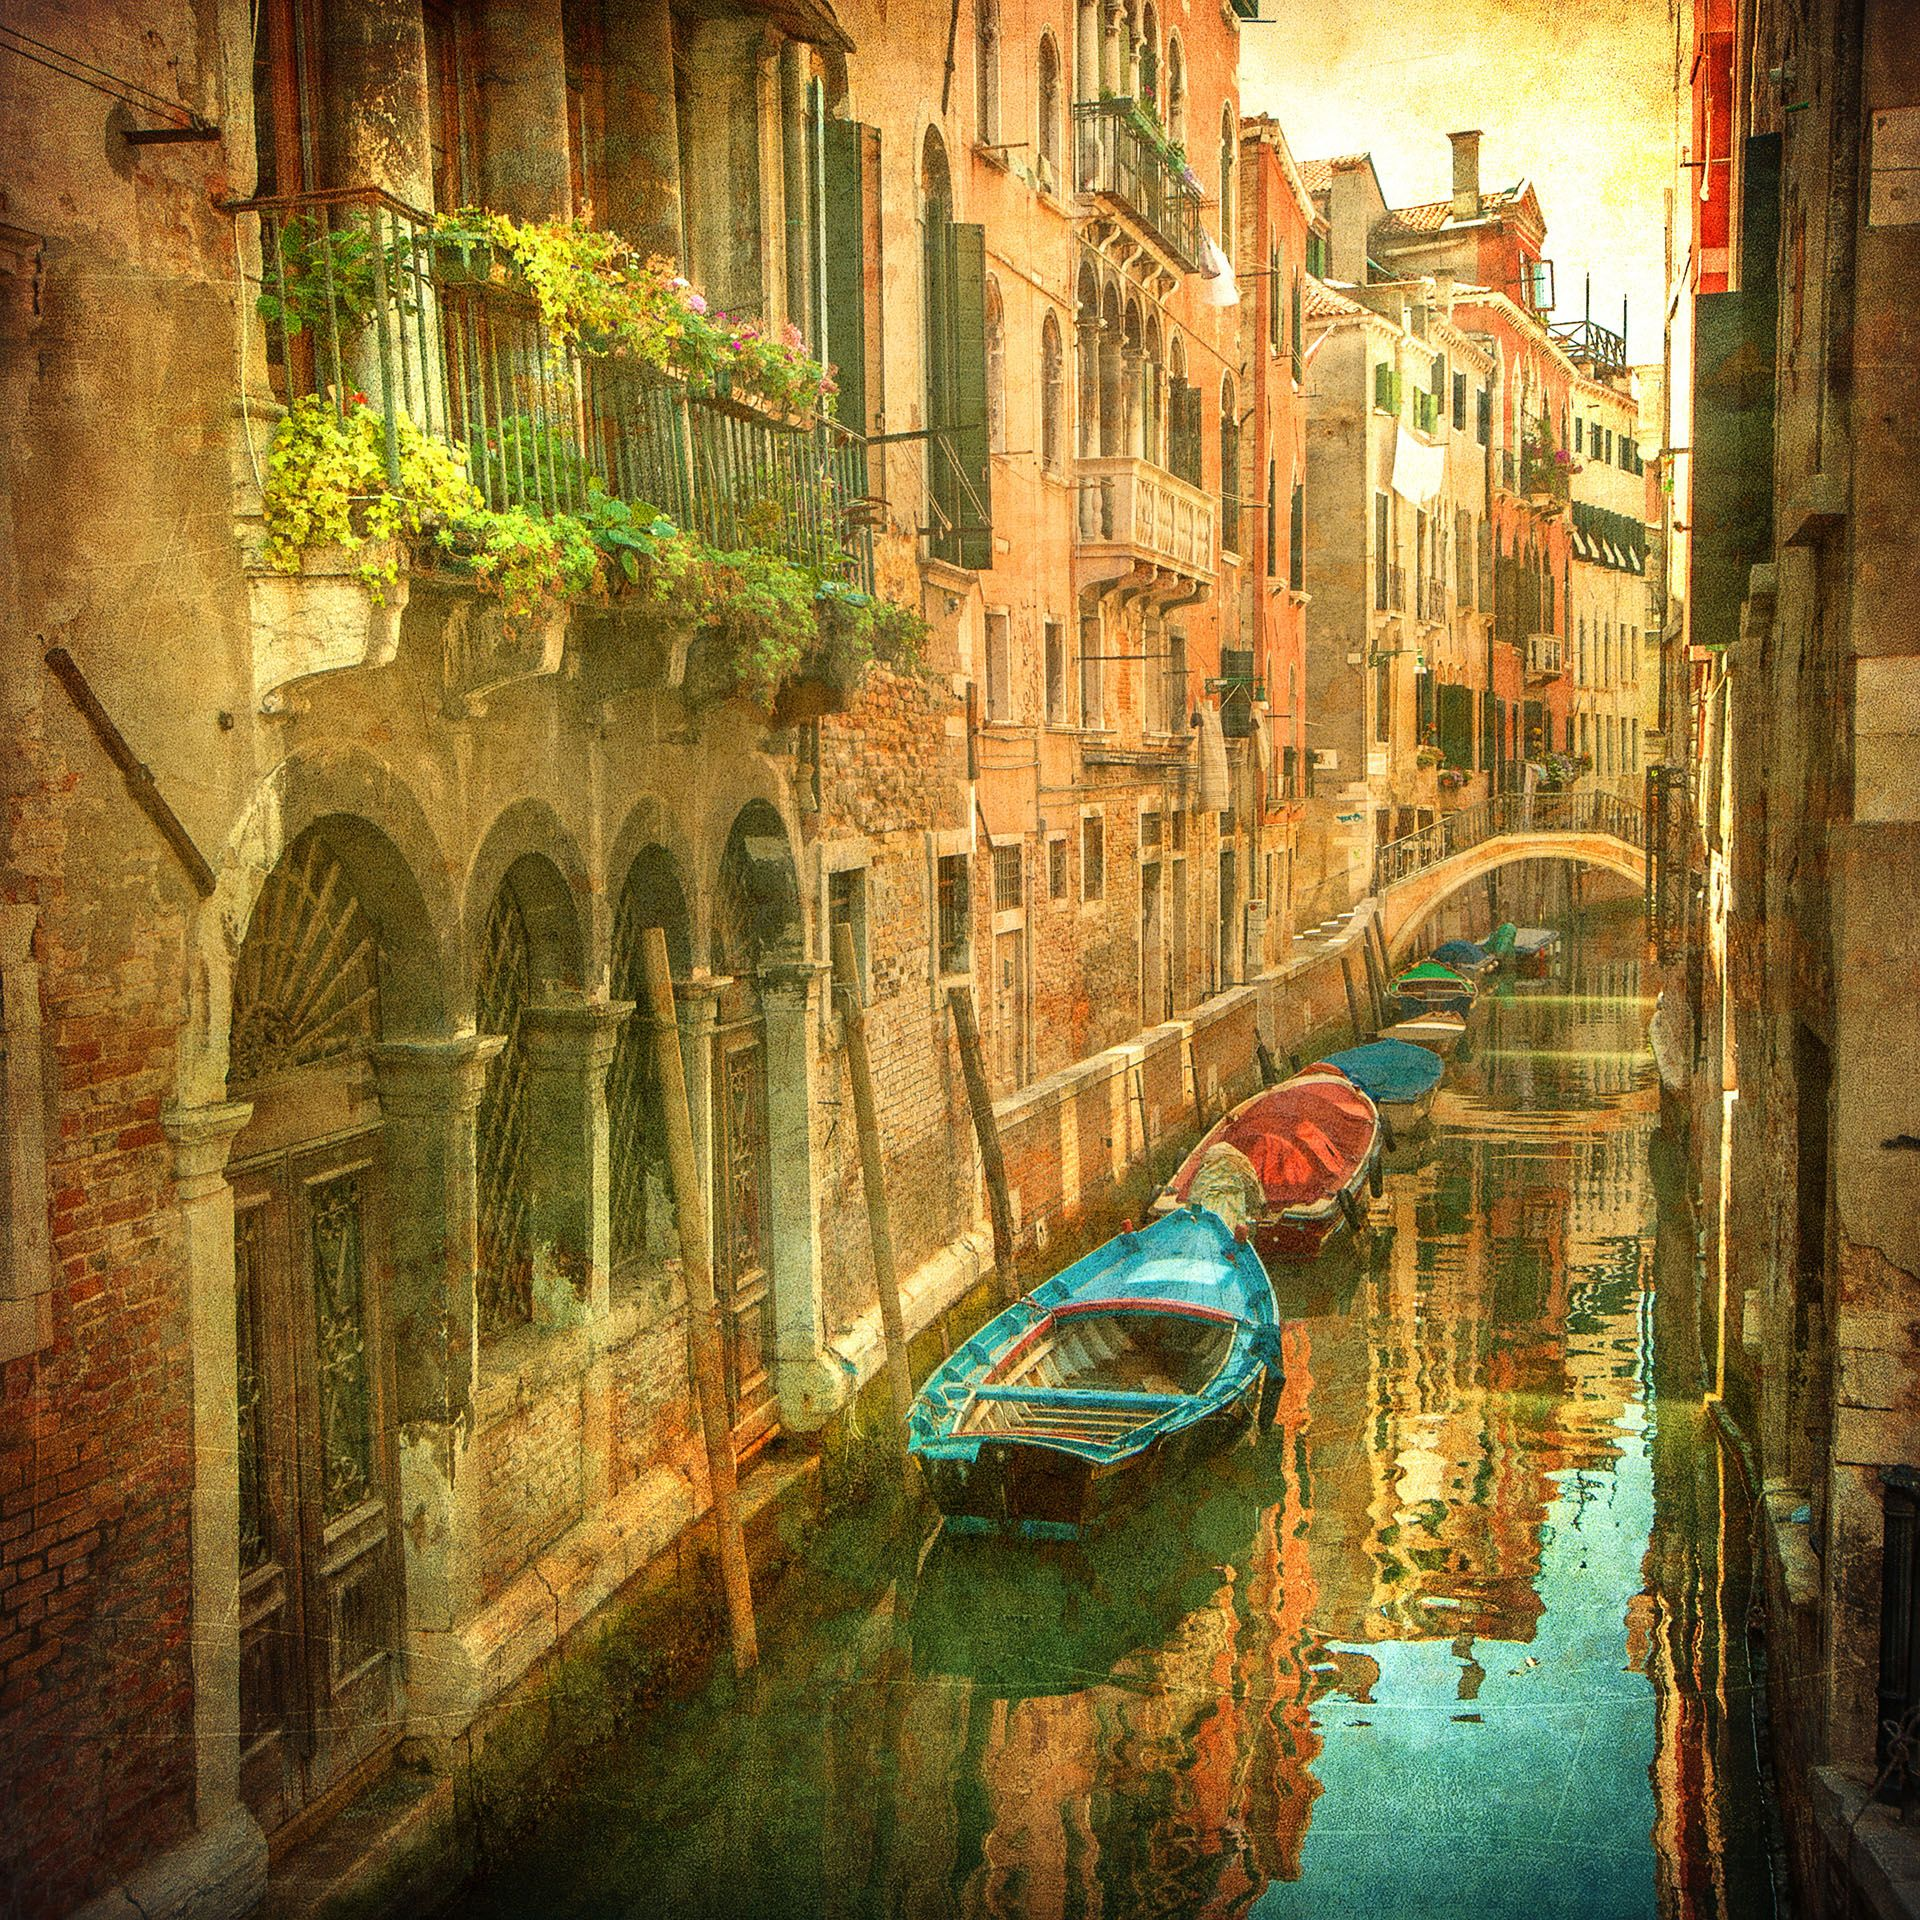 vintage venice canal italy photo wallpaper wall mural (cn 156pitalian wall murals wallpaper vintage venice canal italy photo wallpaper wall mural (cn 156p)